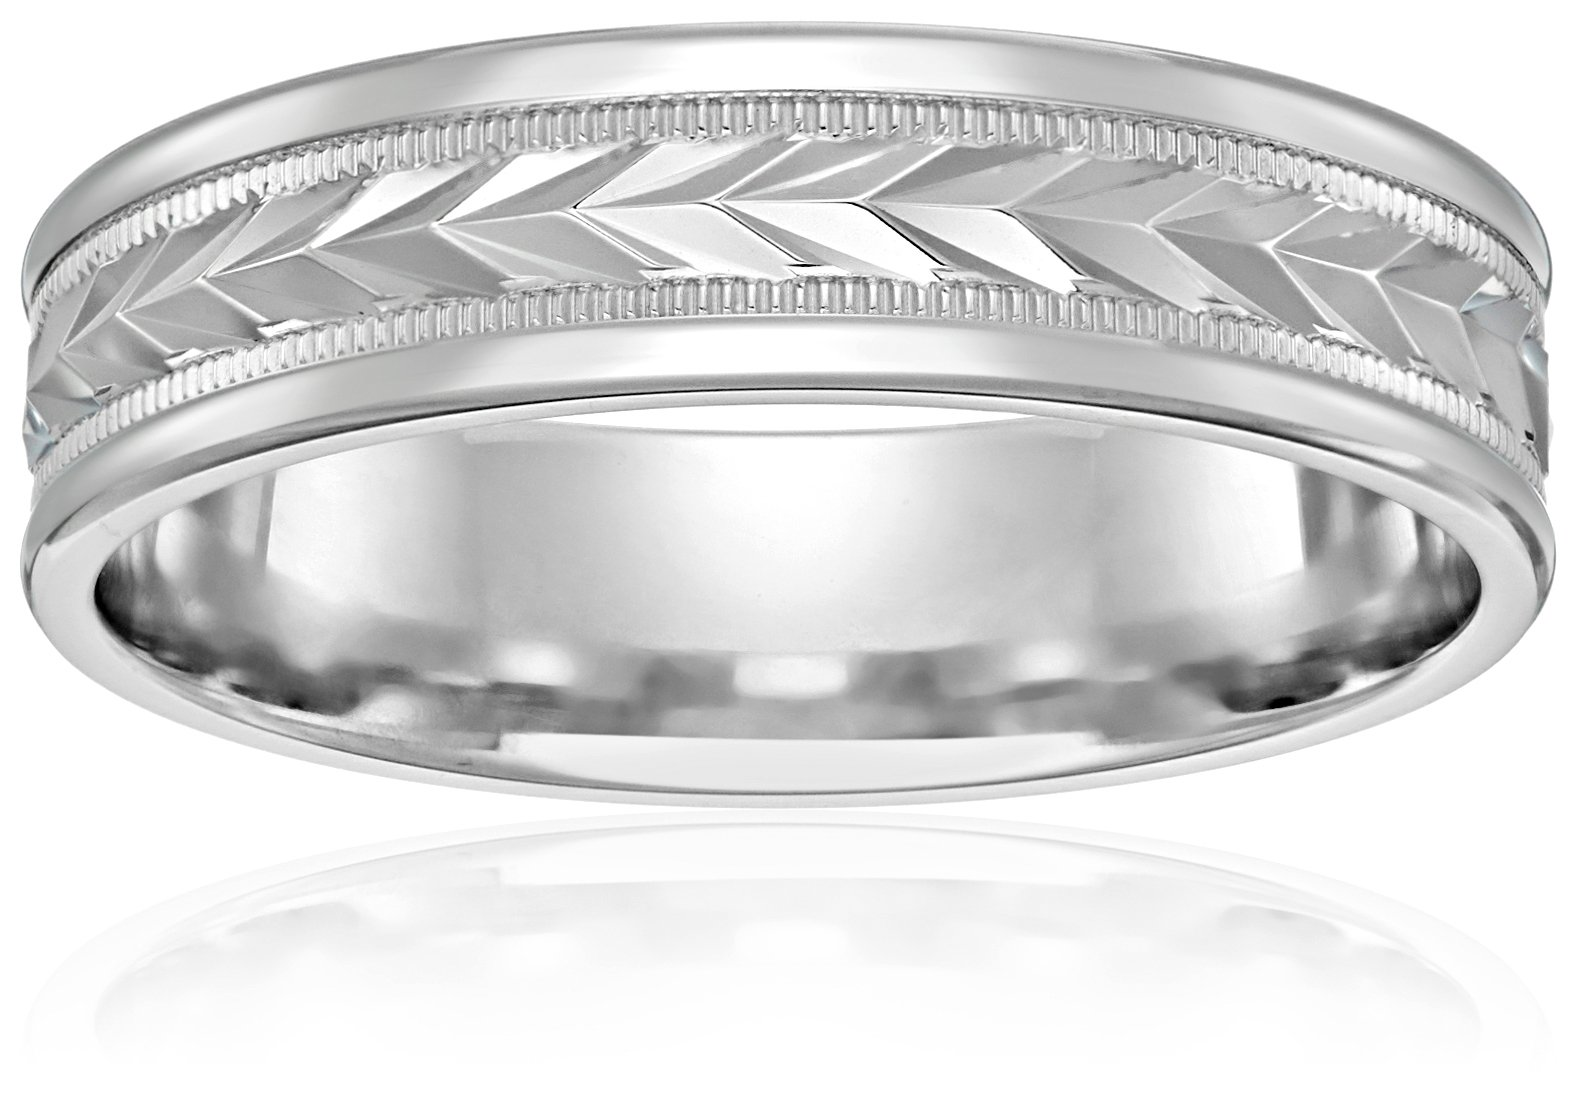 10k White Gold 6mm Comfort-Fit Wedding Band with Wheat Fill Design In Center and High Polish Round Edges, Size 9